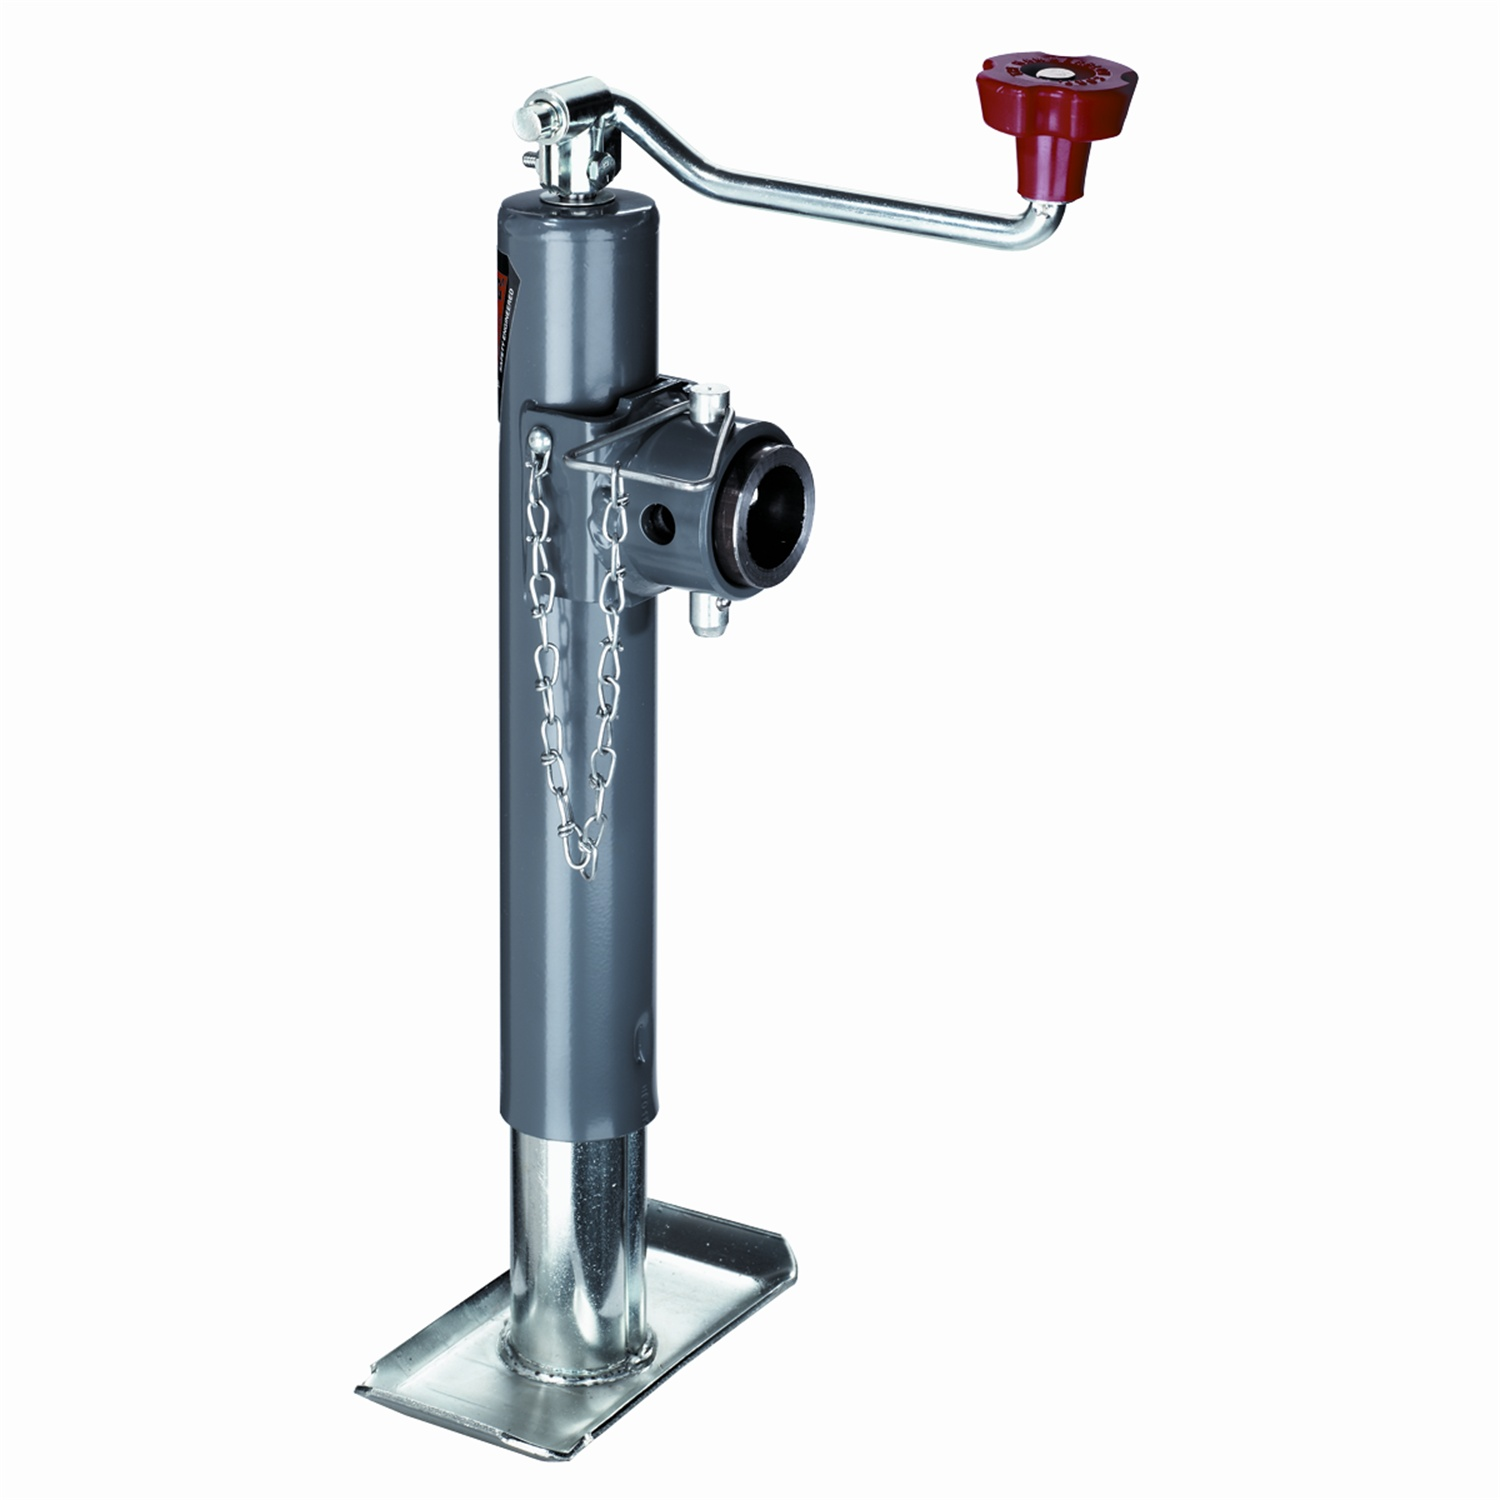 "Bulldog 1584510117 Swivel Trailer Jack Topwind Weld-On Tubular Mount 10"" Travel by Reese"